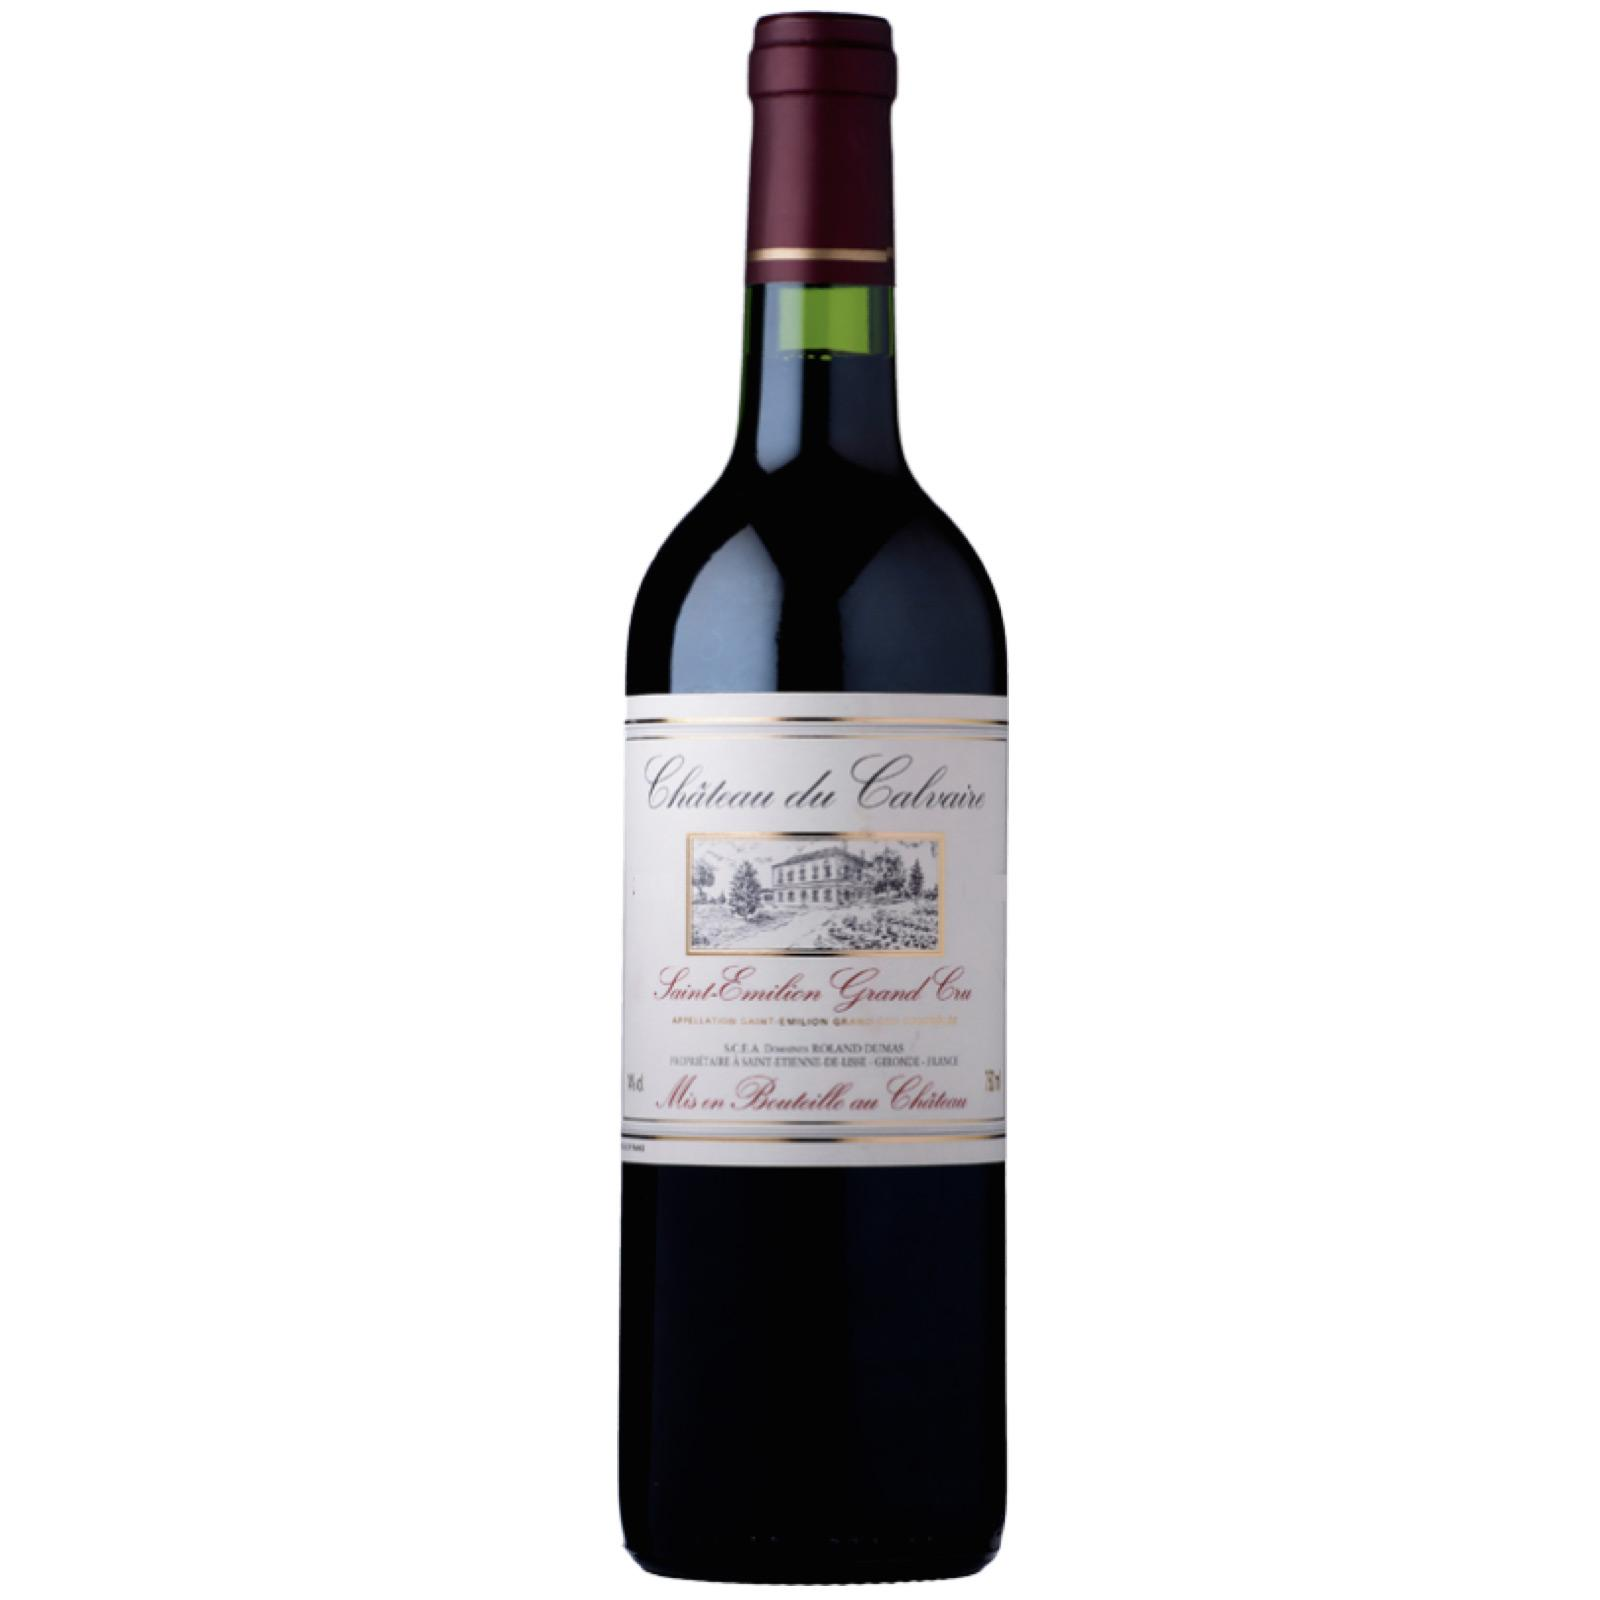 Chateau du Calvaire Saint Emilion Grand Cru Bordeaux Red Wine